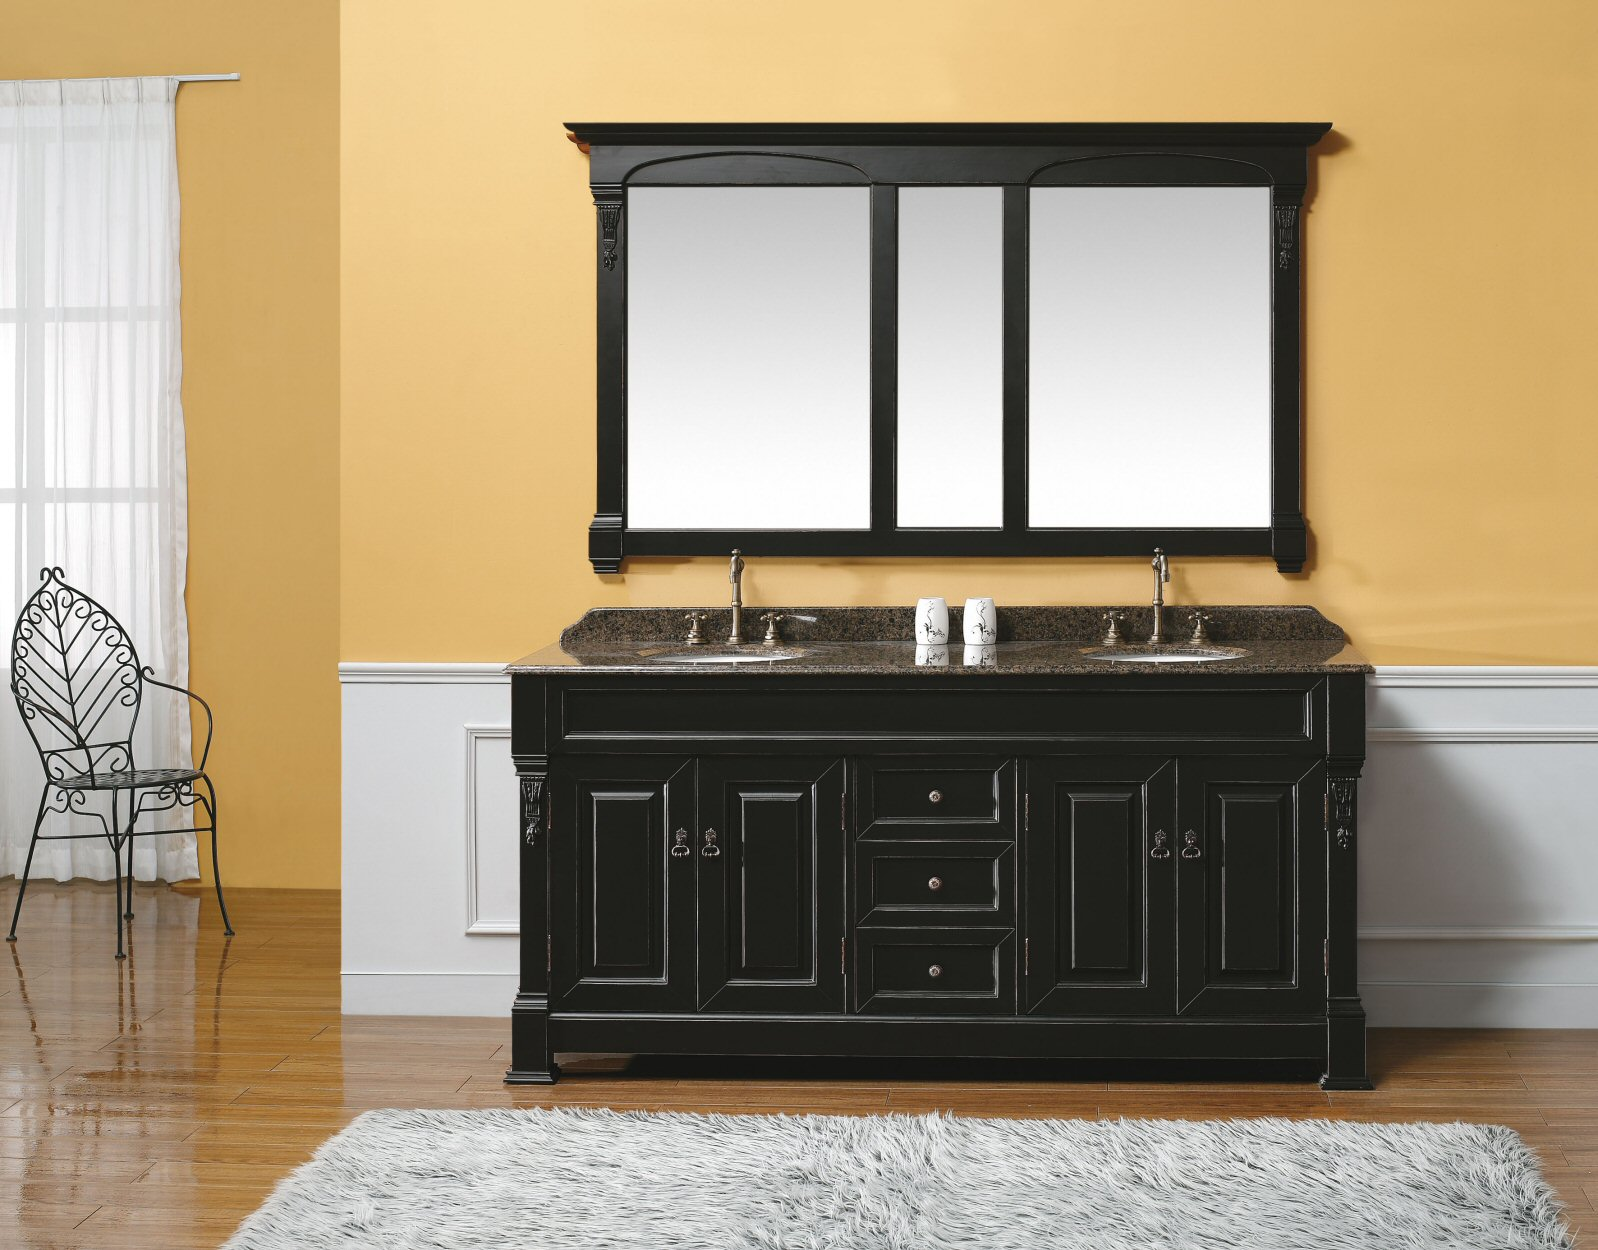 Custom Bathroom Vanities Oakville custom handcrafted bathroom vanities & cabinets for lowest price